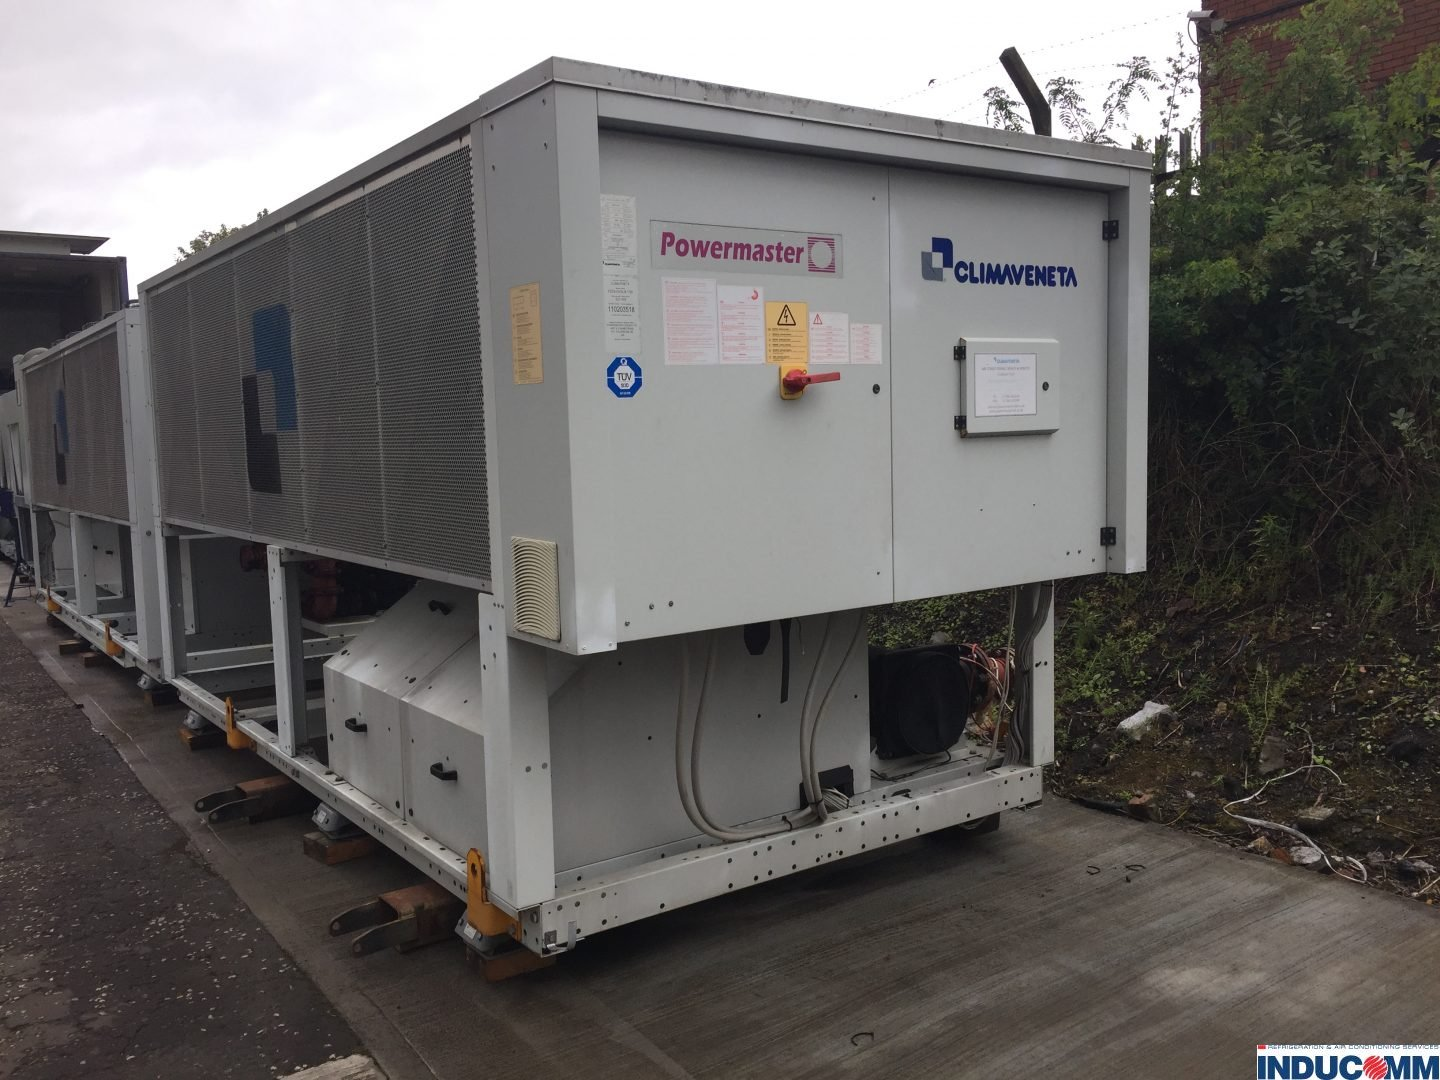 Equipment For Sale - Inducomm refrigeration & air conditioning services